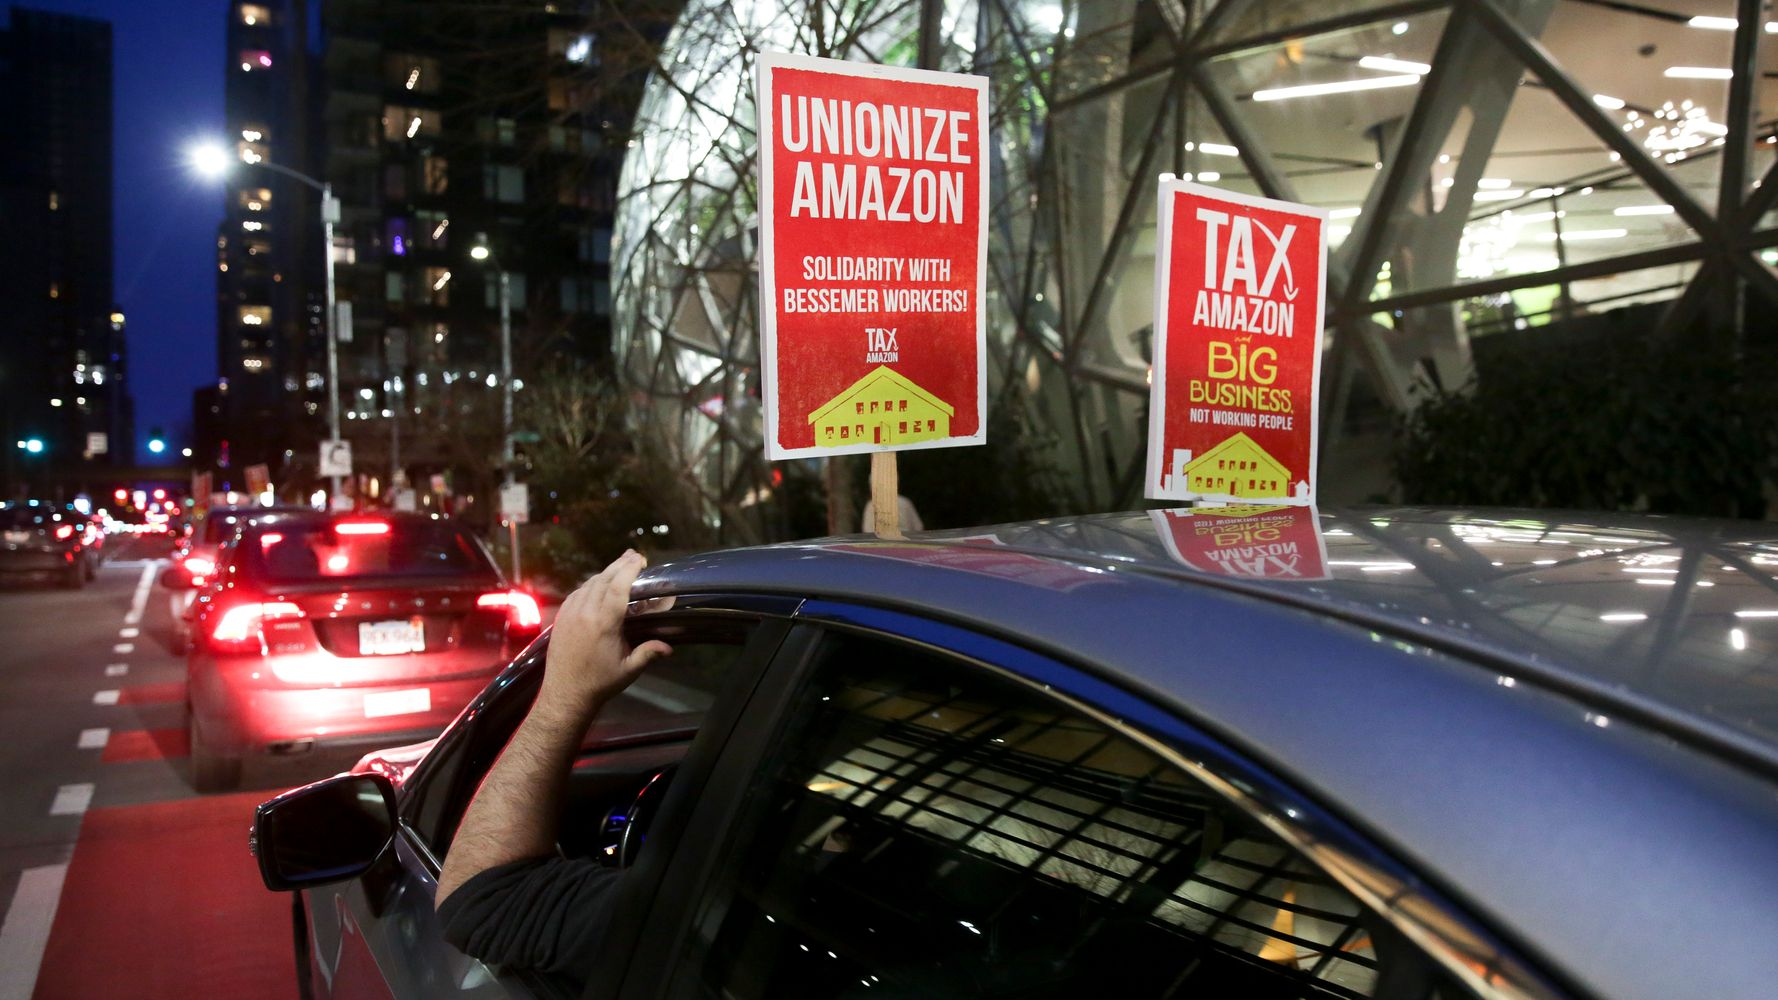 www.huffpost.com: Amazon Workers' Fight To Unionize Draws Help From Around The World